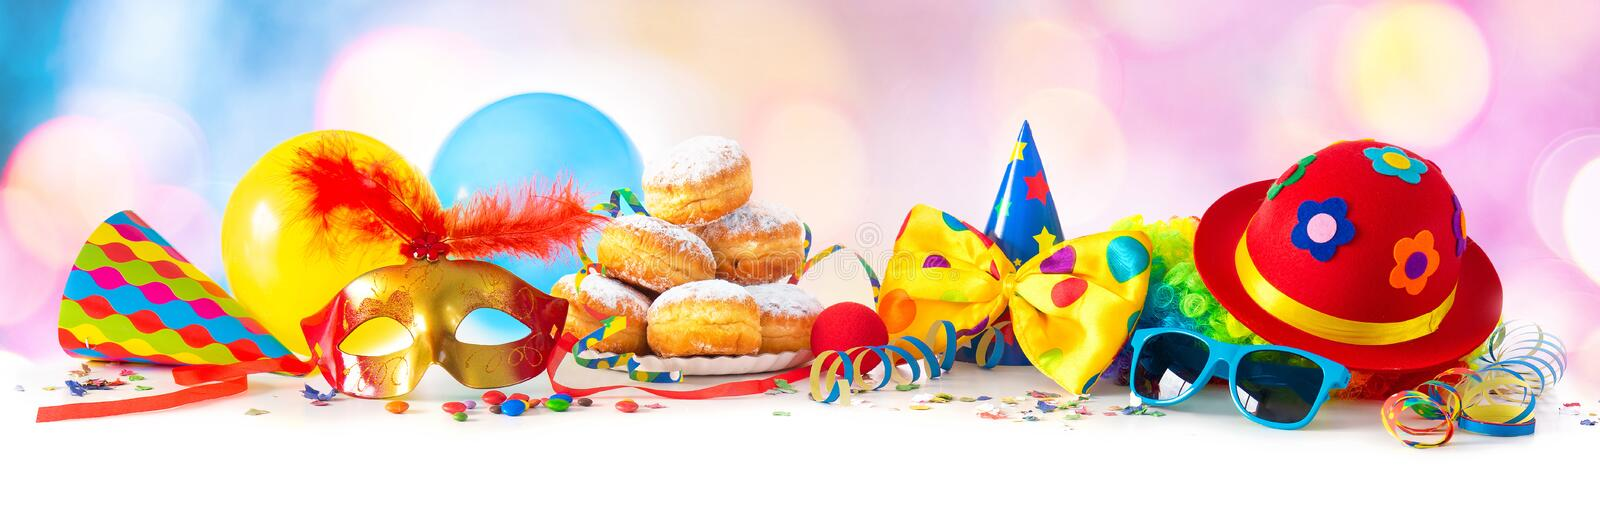 Carnival or party with donuts, balloons, streamers and confetti and funny face royalty free stock photo